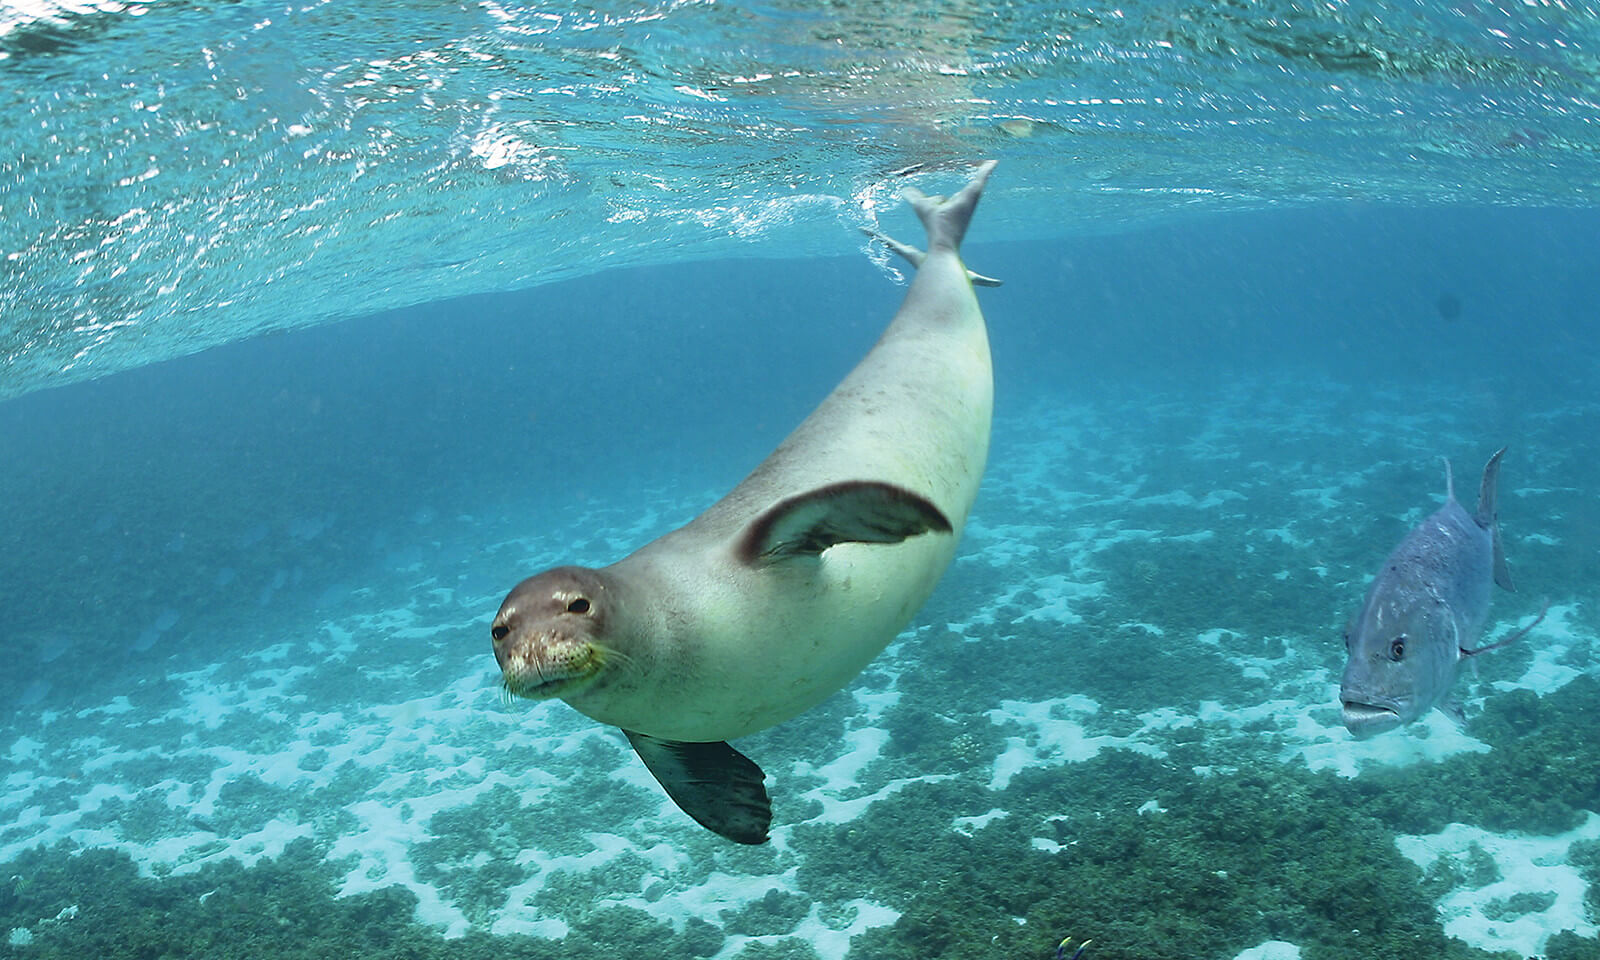 Hawaiian monk seal swimming underwater.